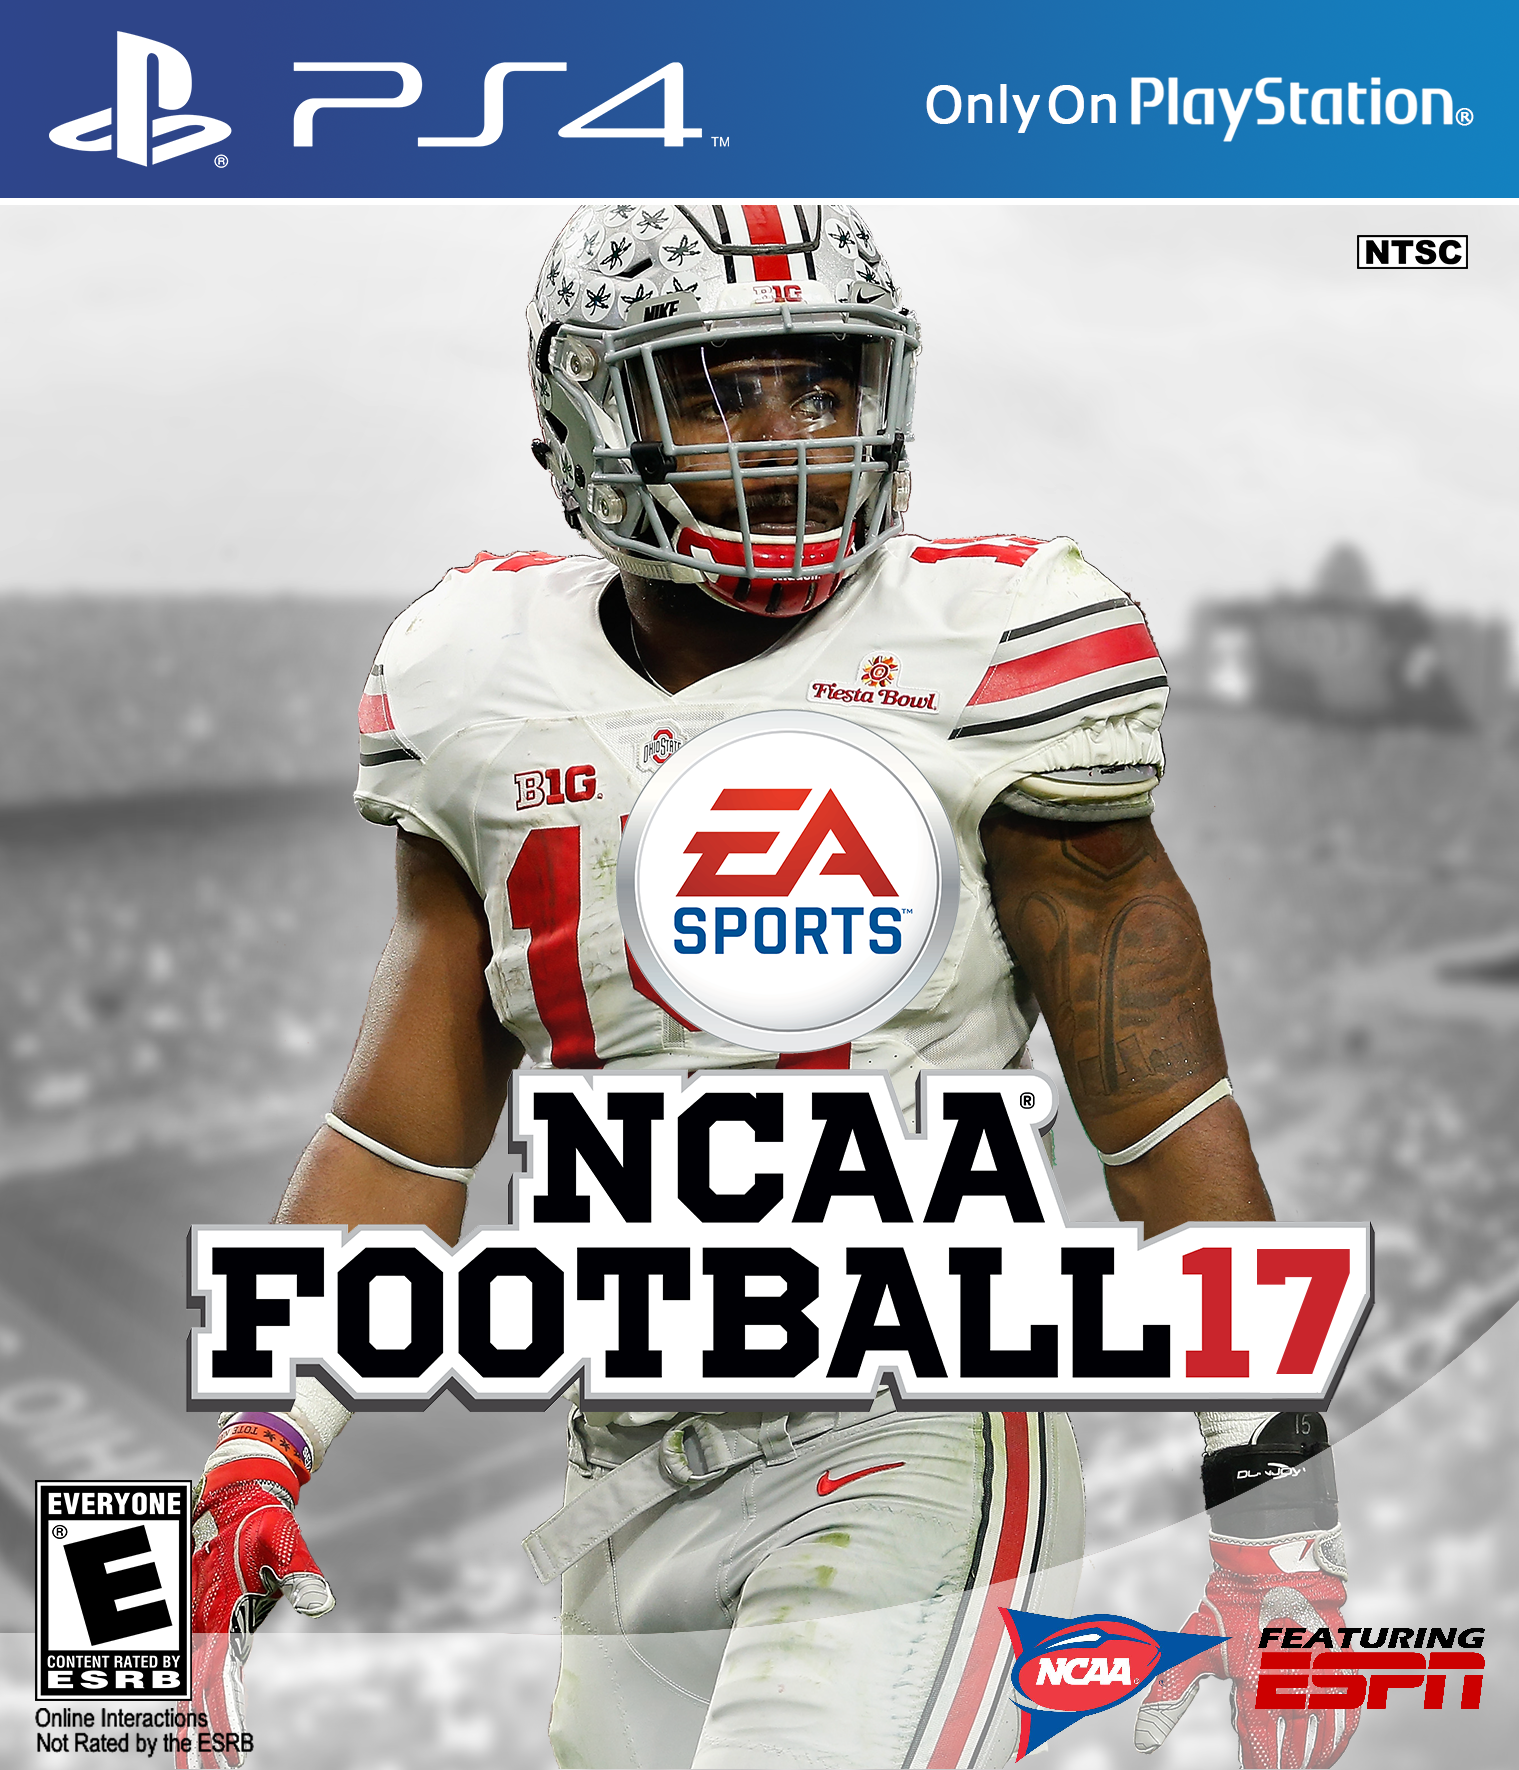 ncaa footballl rivals ncaa football